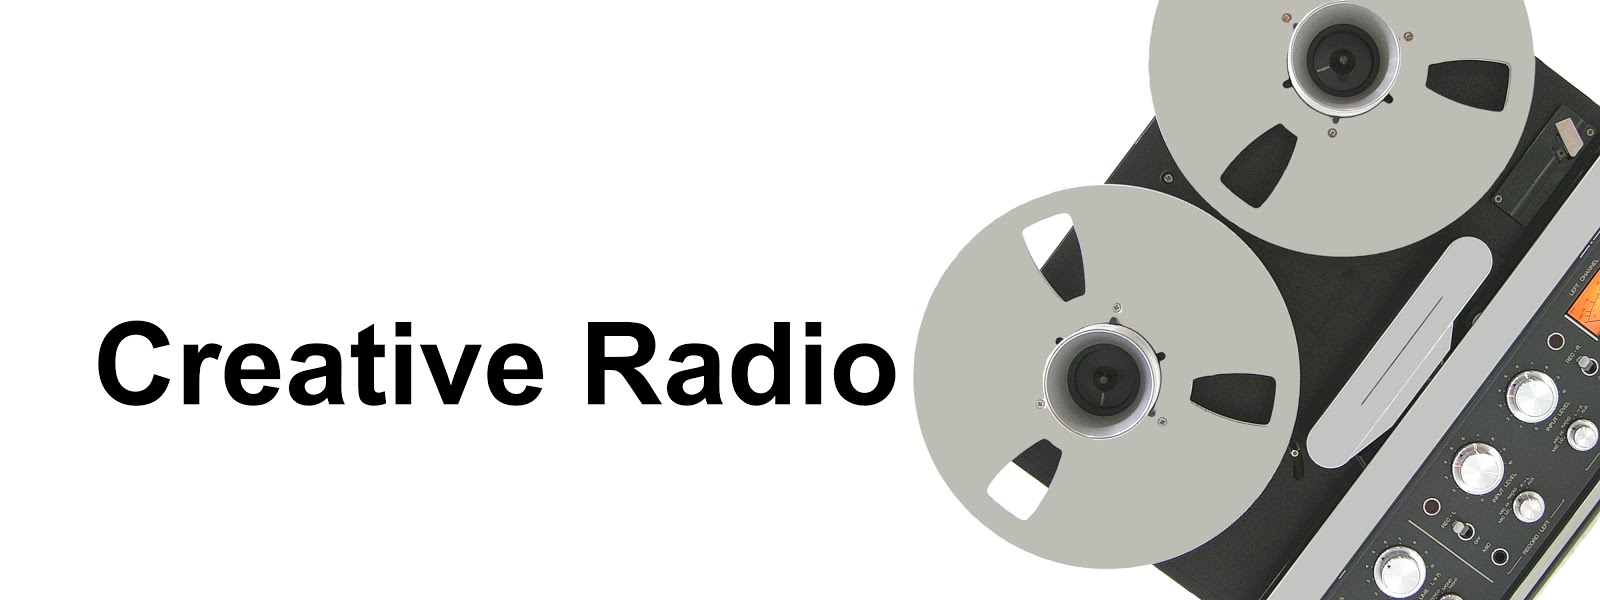 Creative Radio Partnership